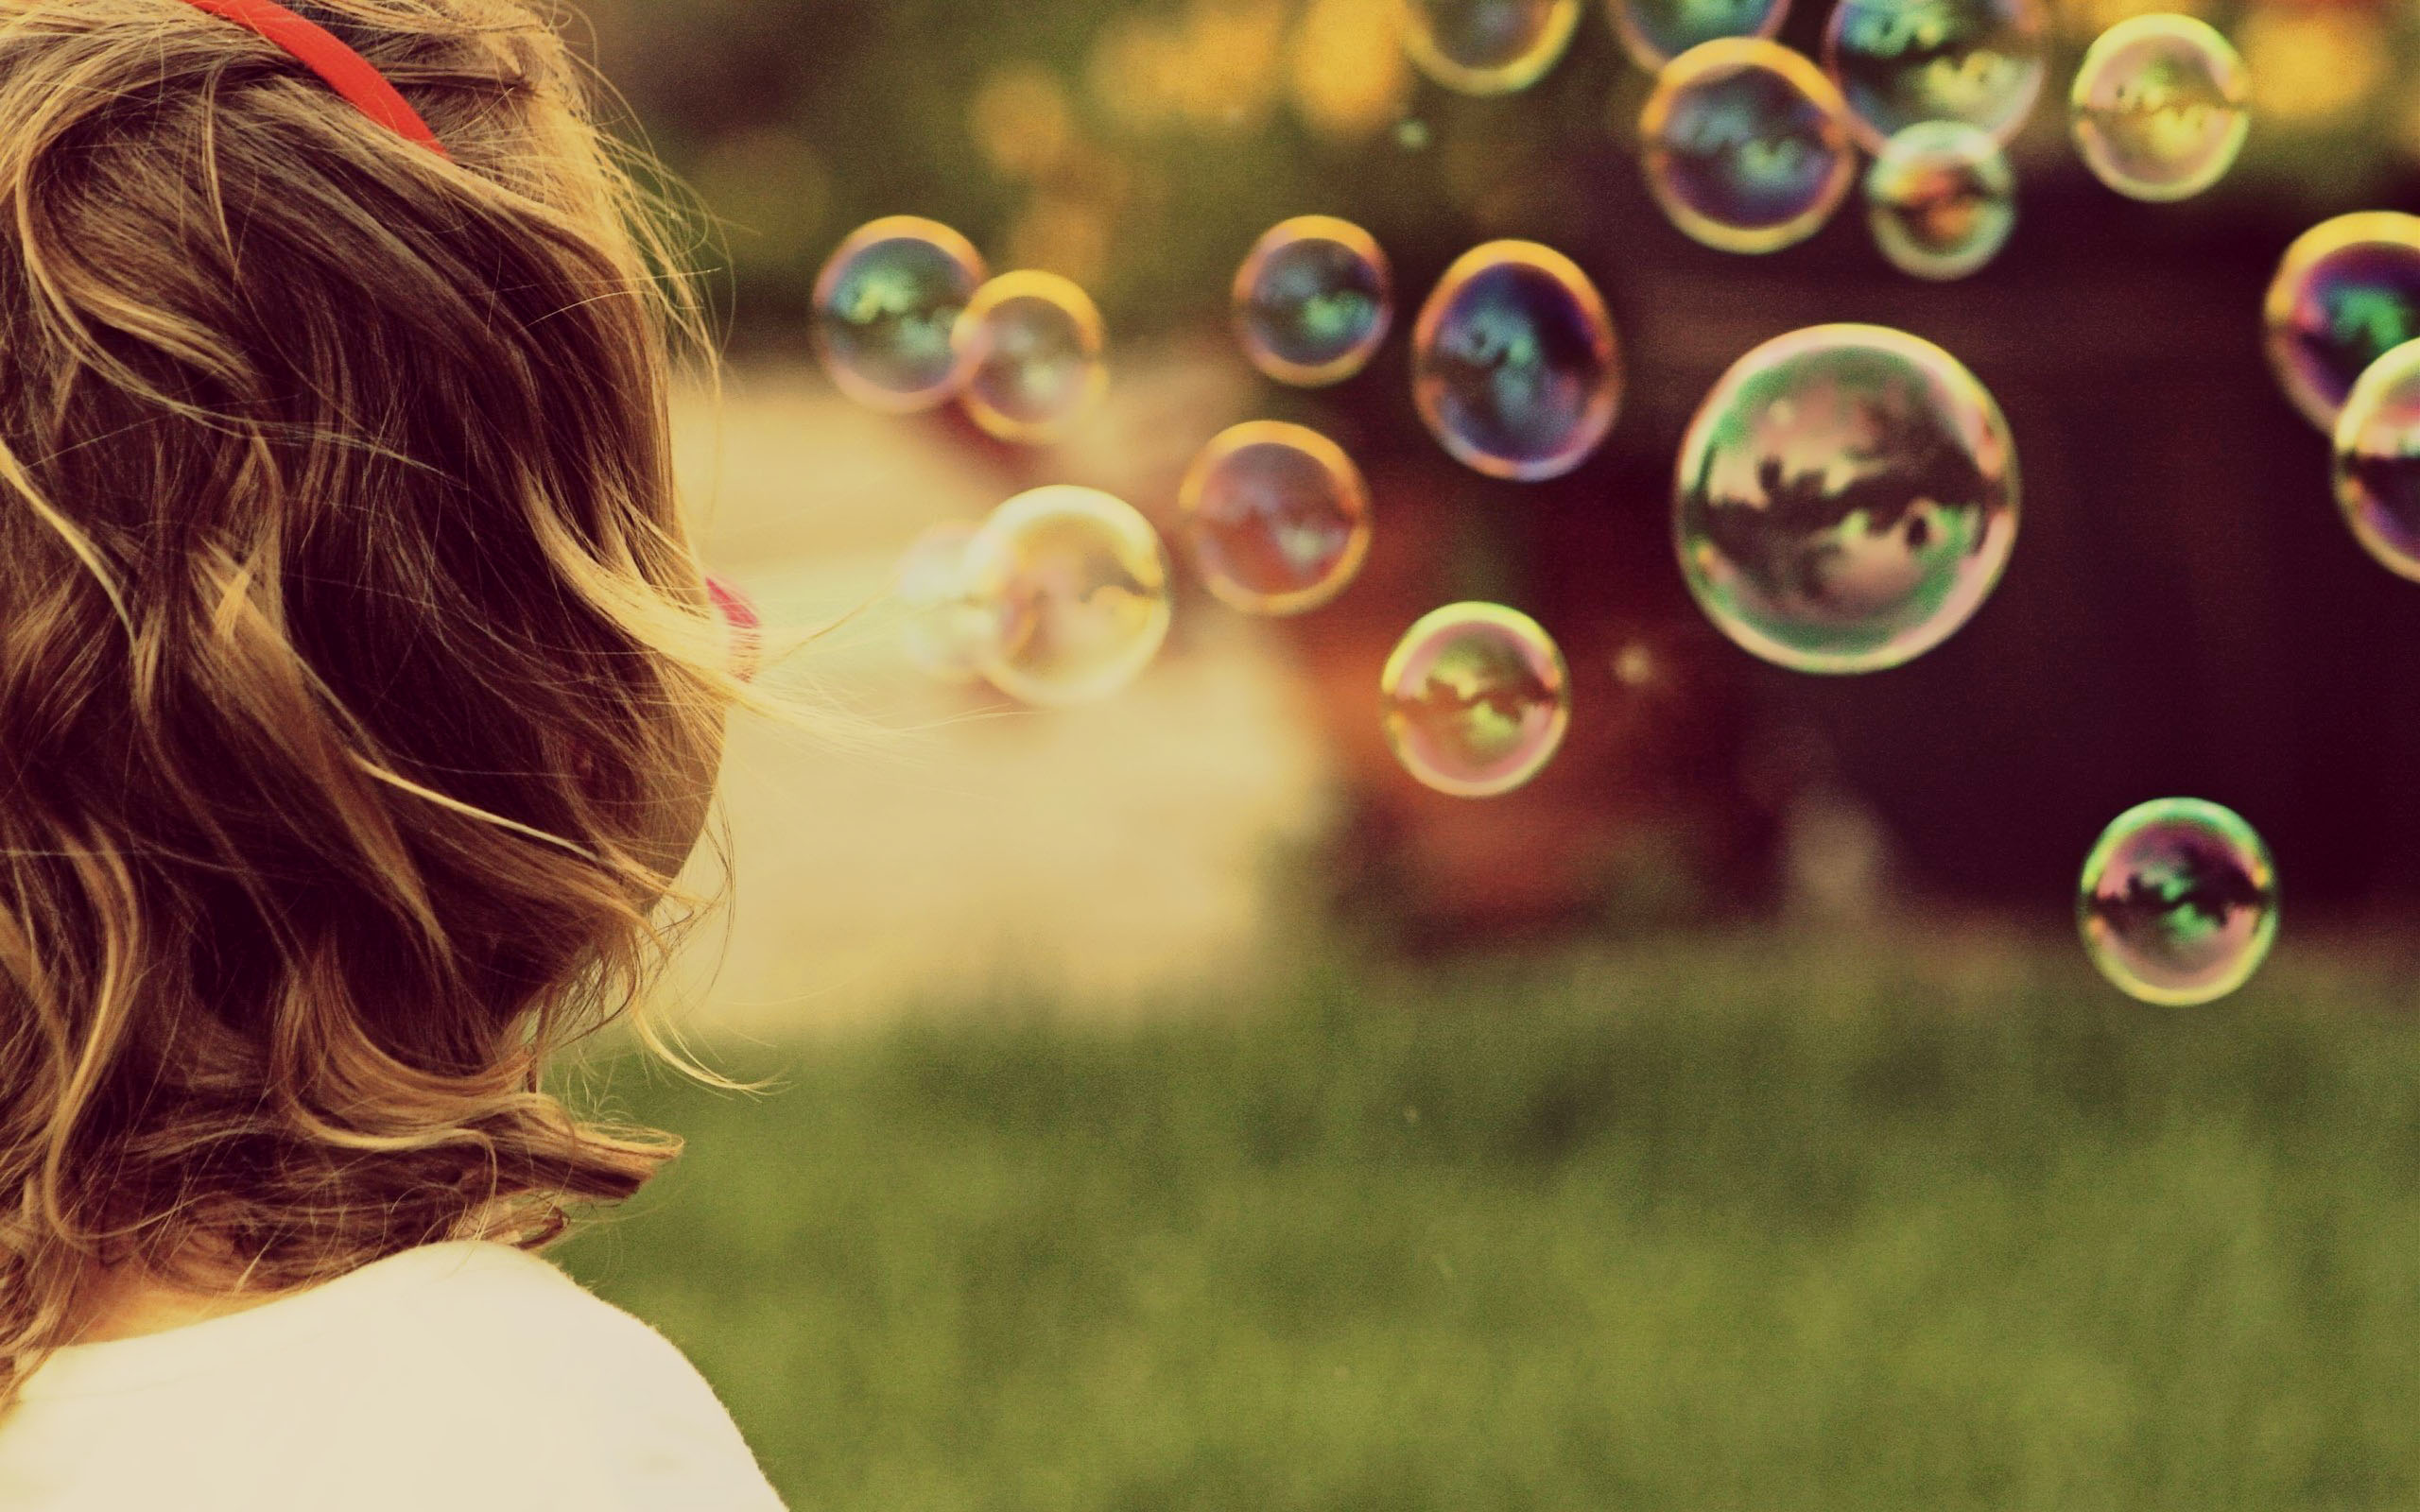 Awesome Soap Bubbles Wallpaper